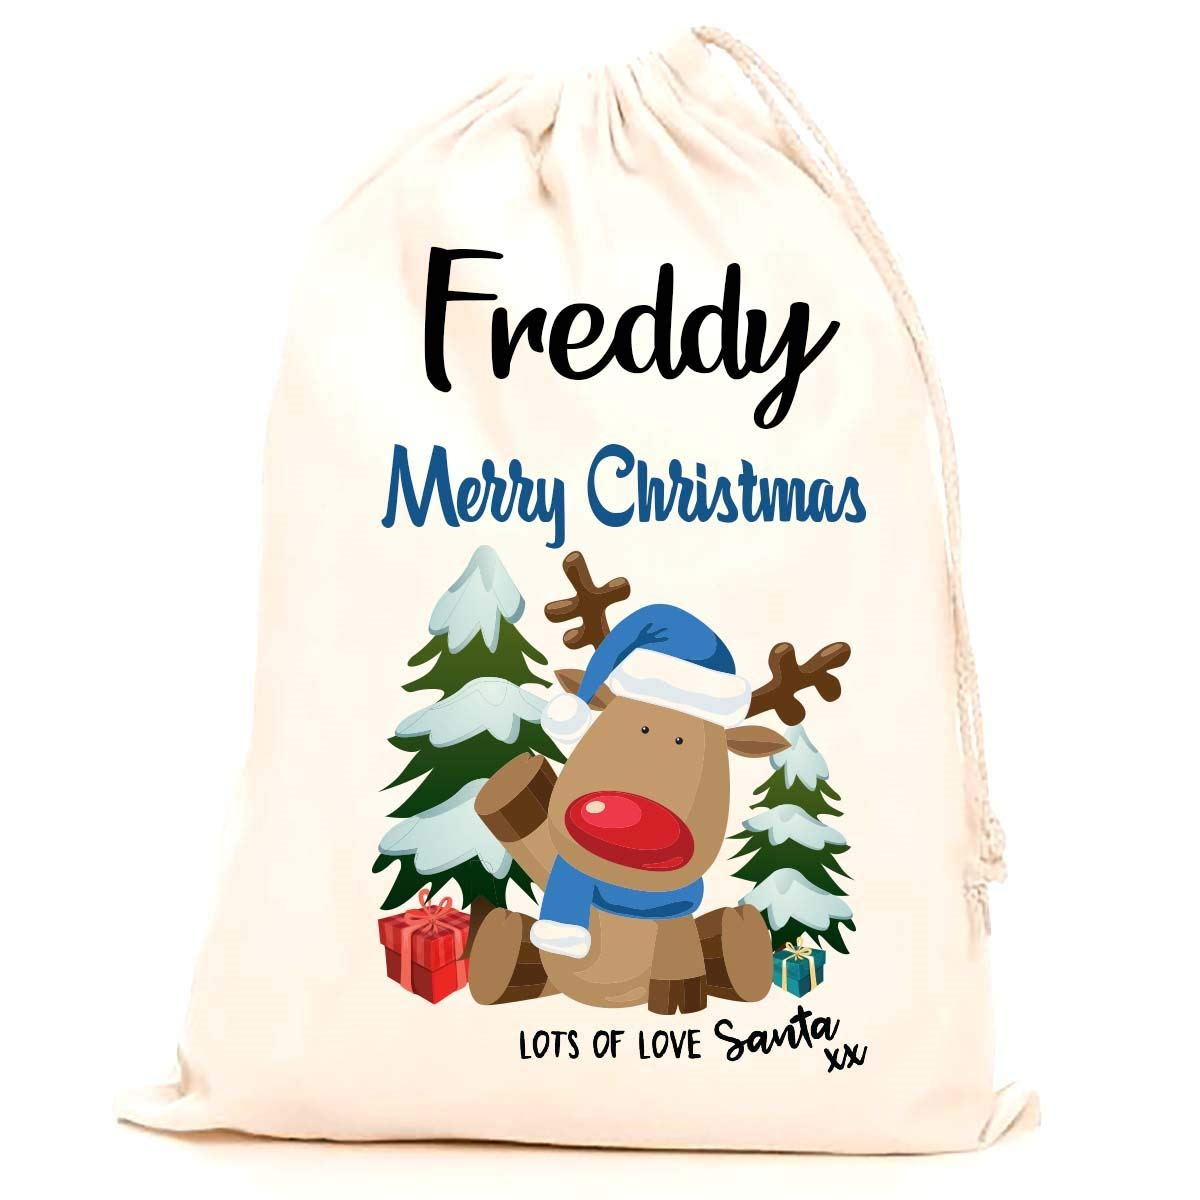 Treat Me Suite Freddy personalised name Christmas santa sack, stocking printed with a blue reindeer (75x50cm) 100% Cotton Large. Children, Kids, making it the perfect keepsake xmas gift/present. CS Printing Limited